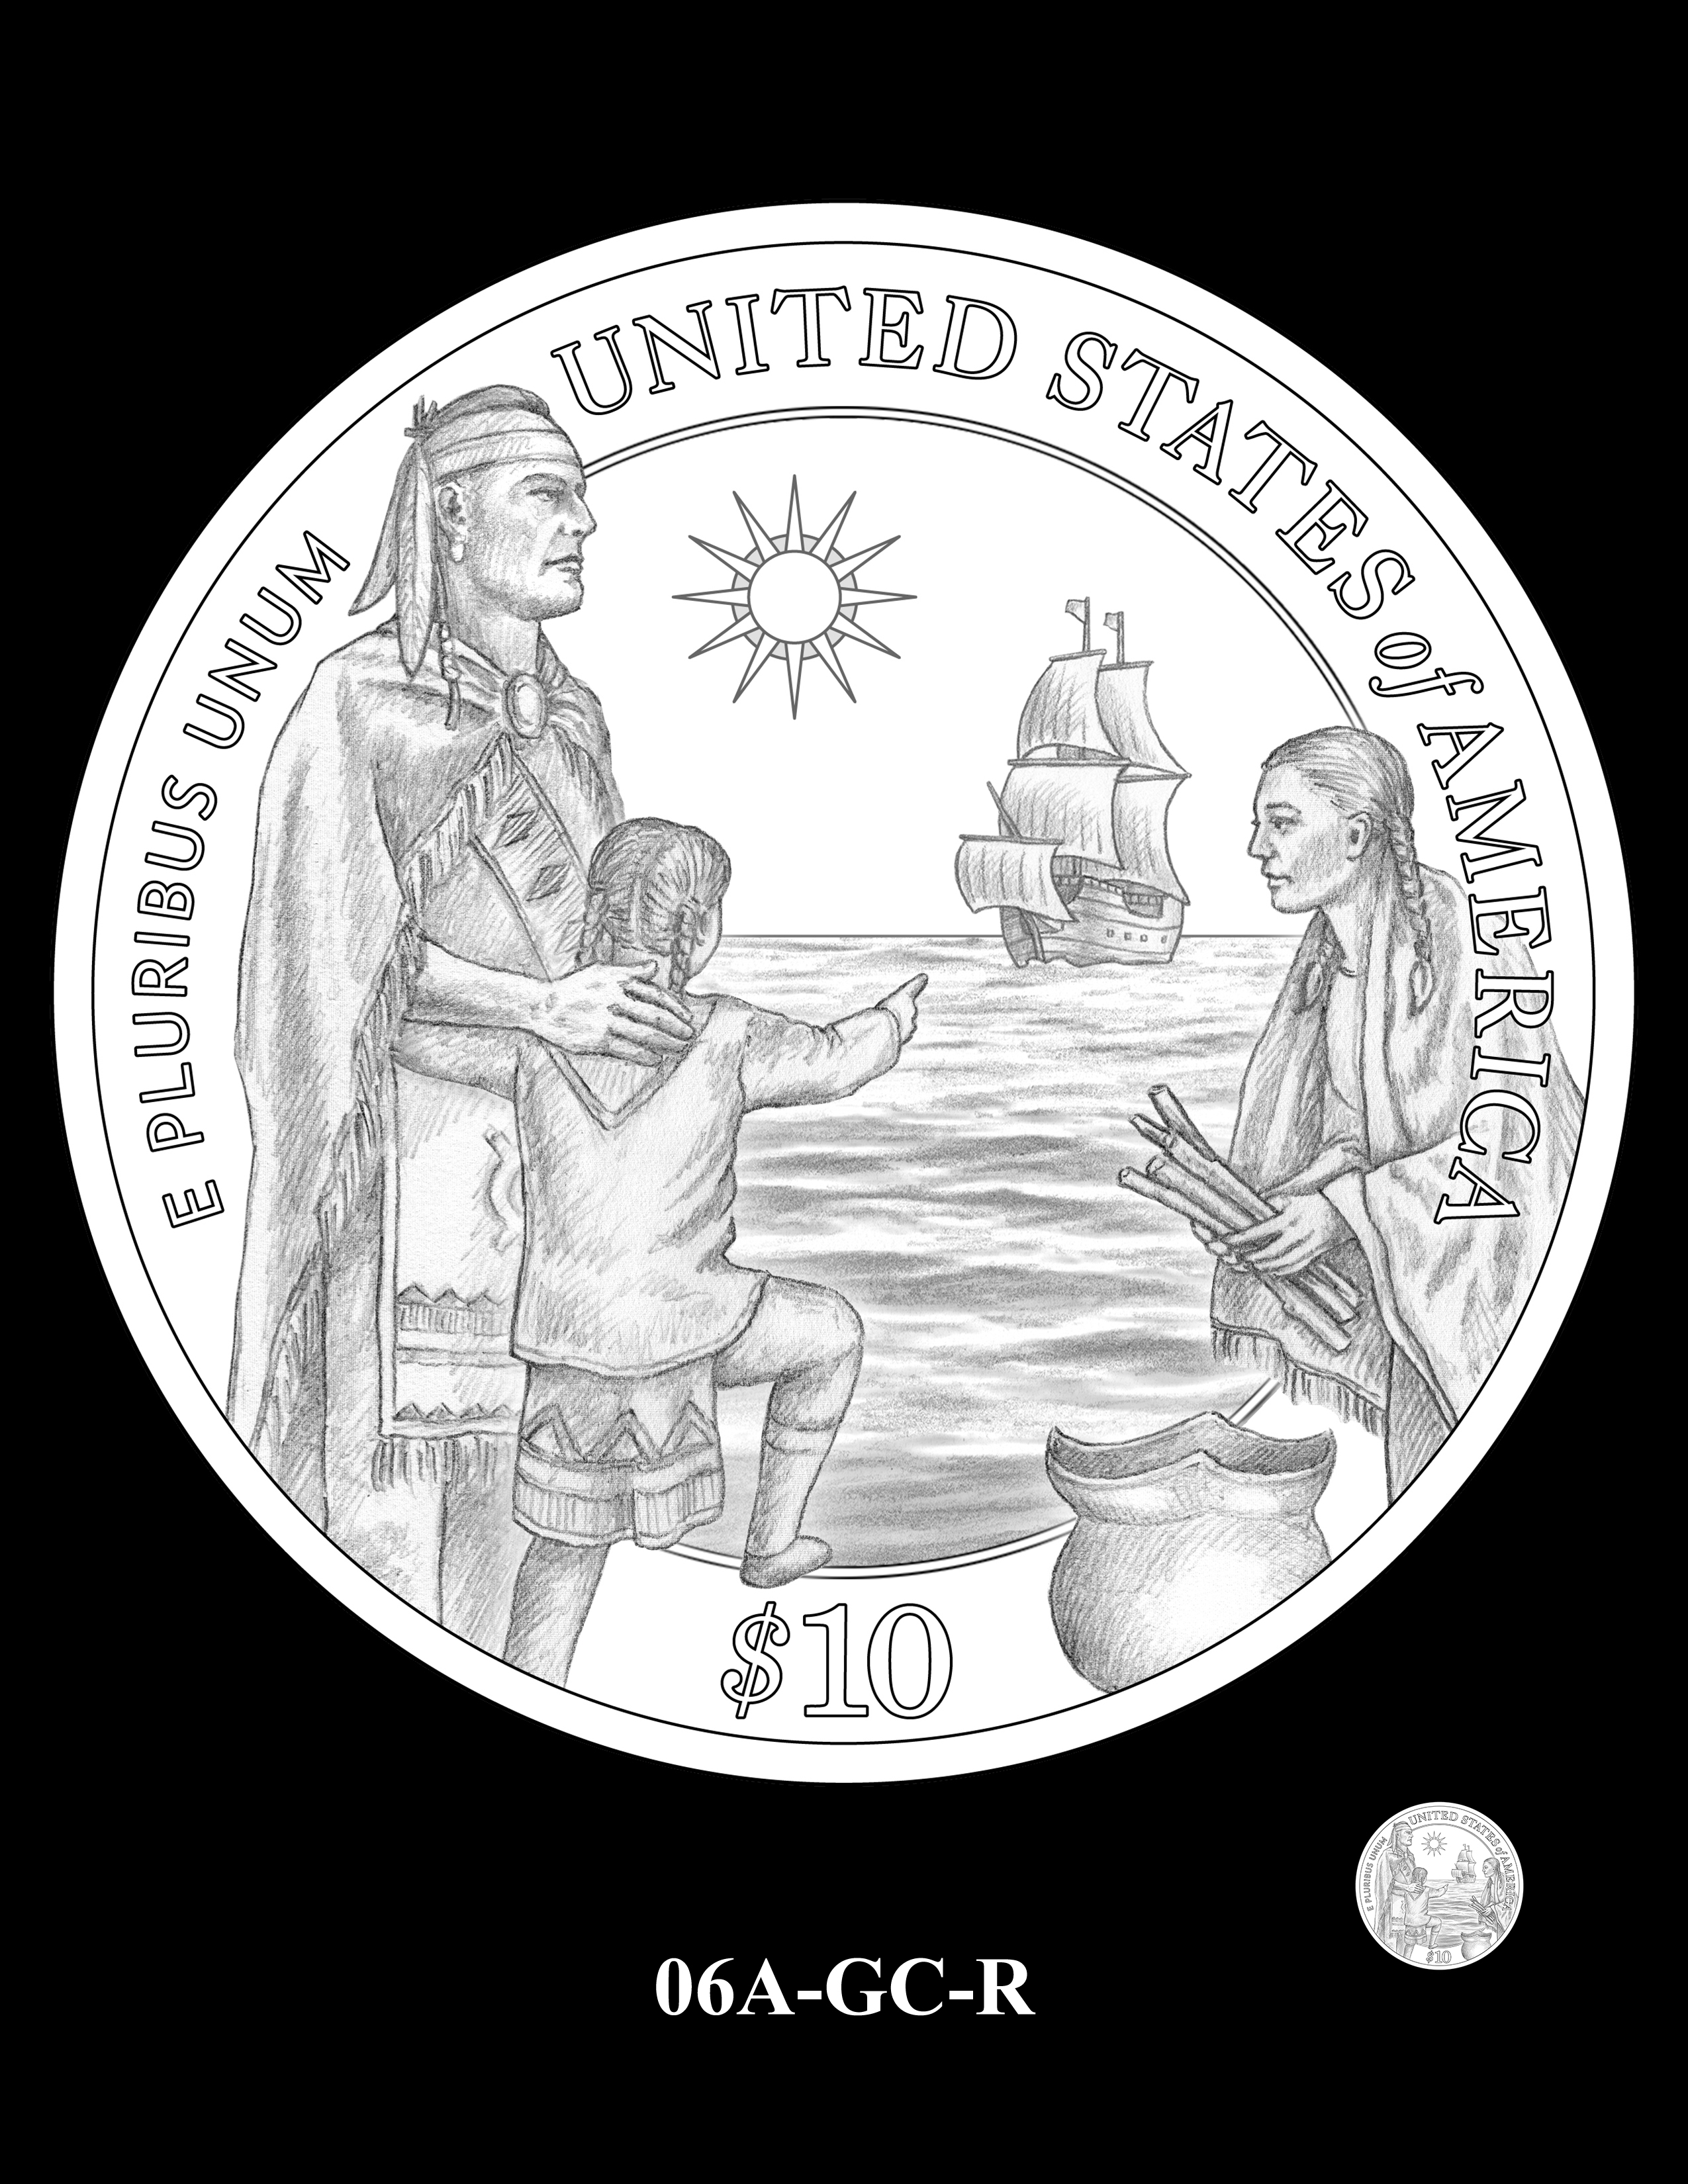 06A-GC-R - 2020 Mayflower 400th Anniversary 24K Gold Coin & Silver Medal Program